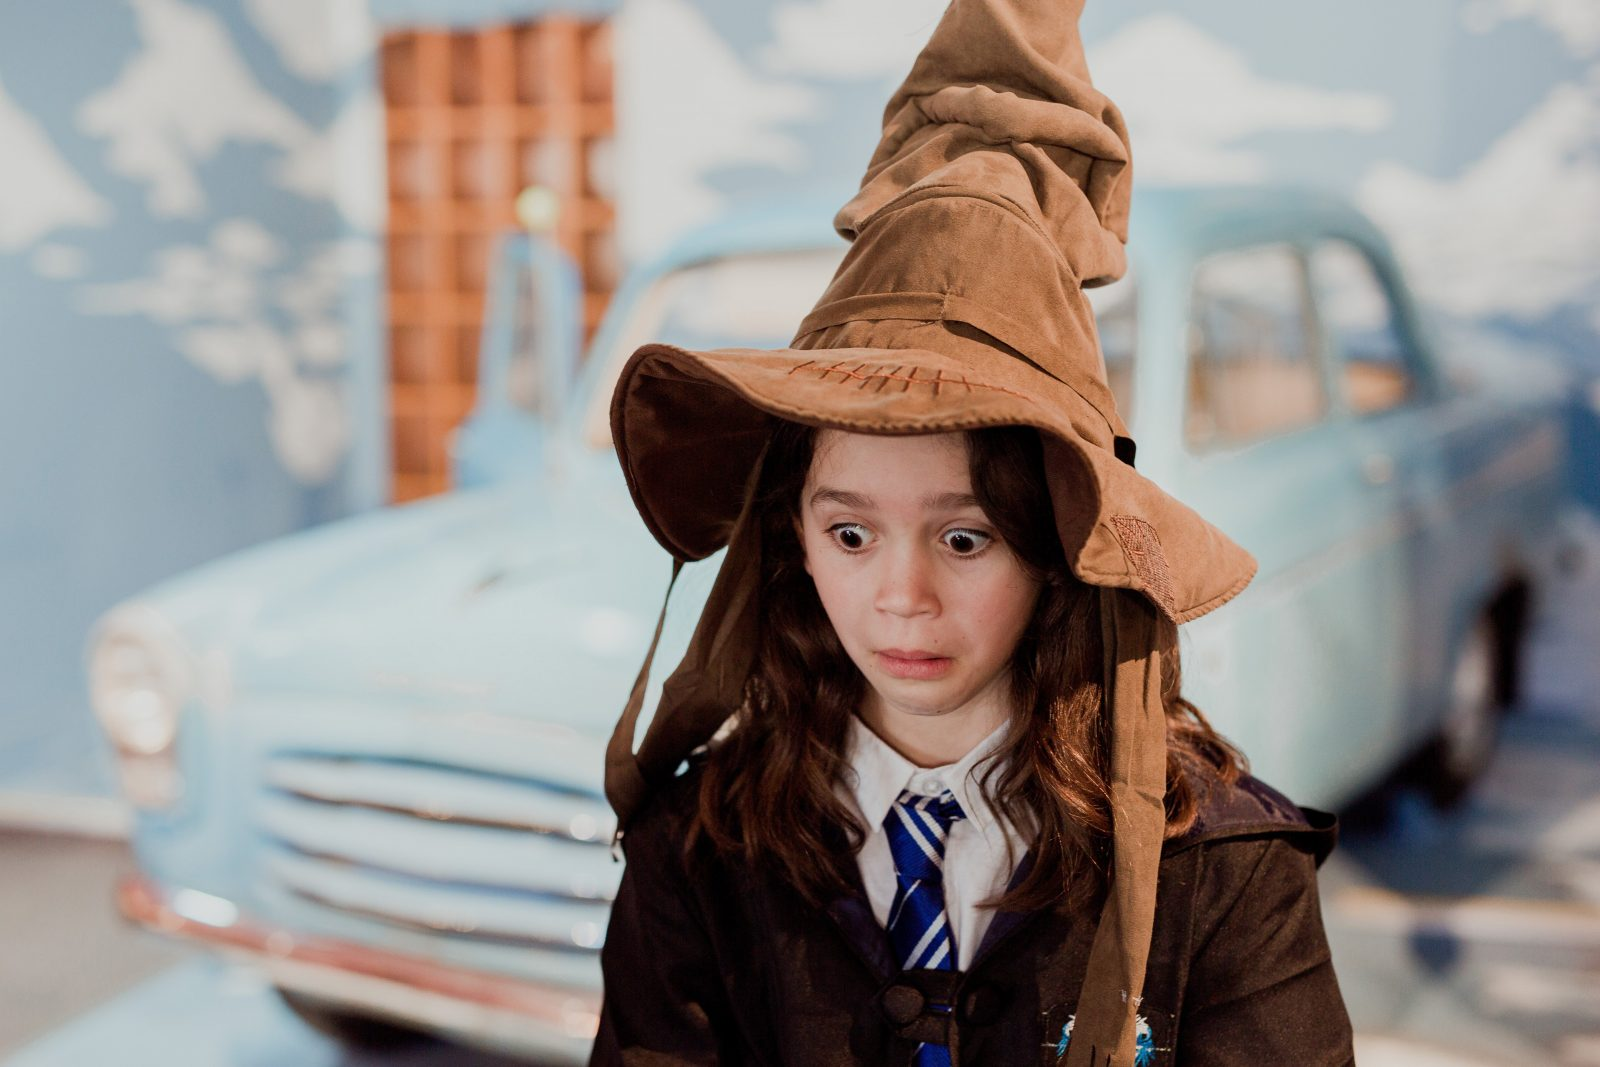 Young girl wearing a sorting hat